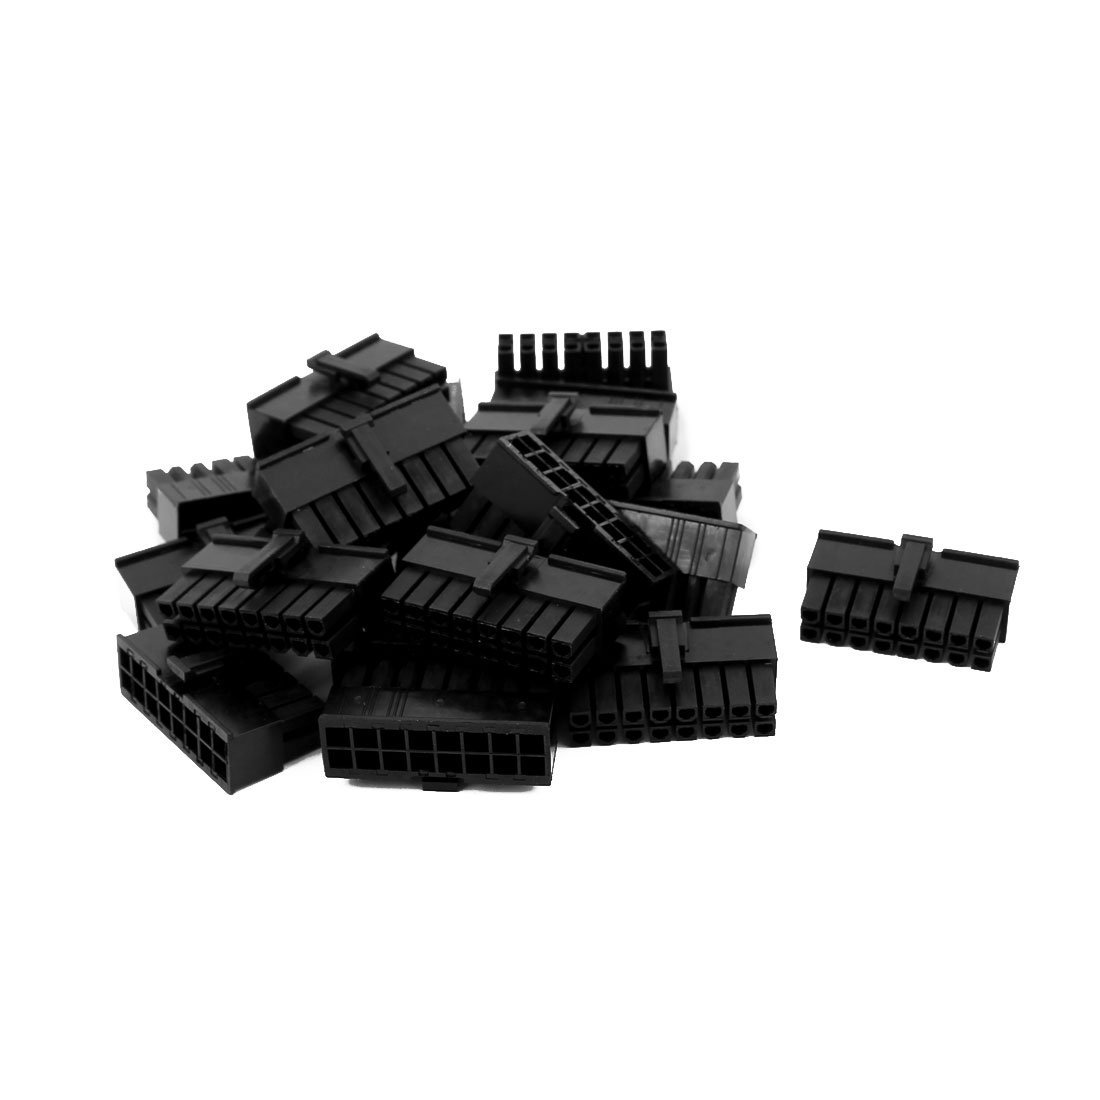 uxcell 20pcs Double Row Male Housing 5557 4.2mm Pitch 16P Connector Plastic Shell